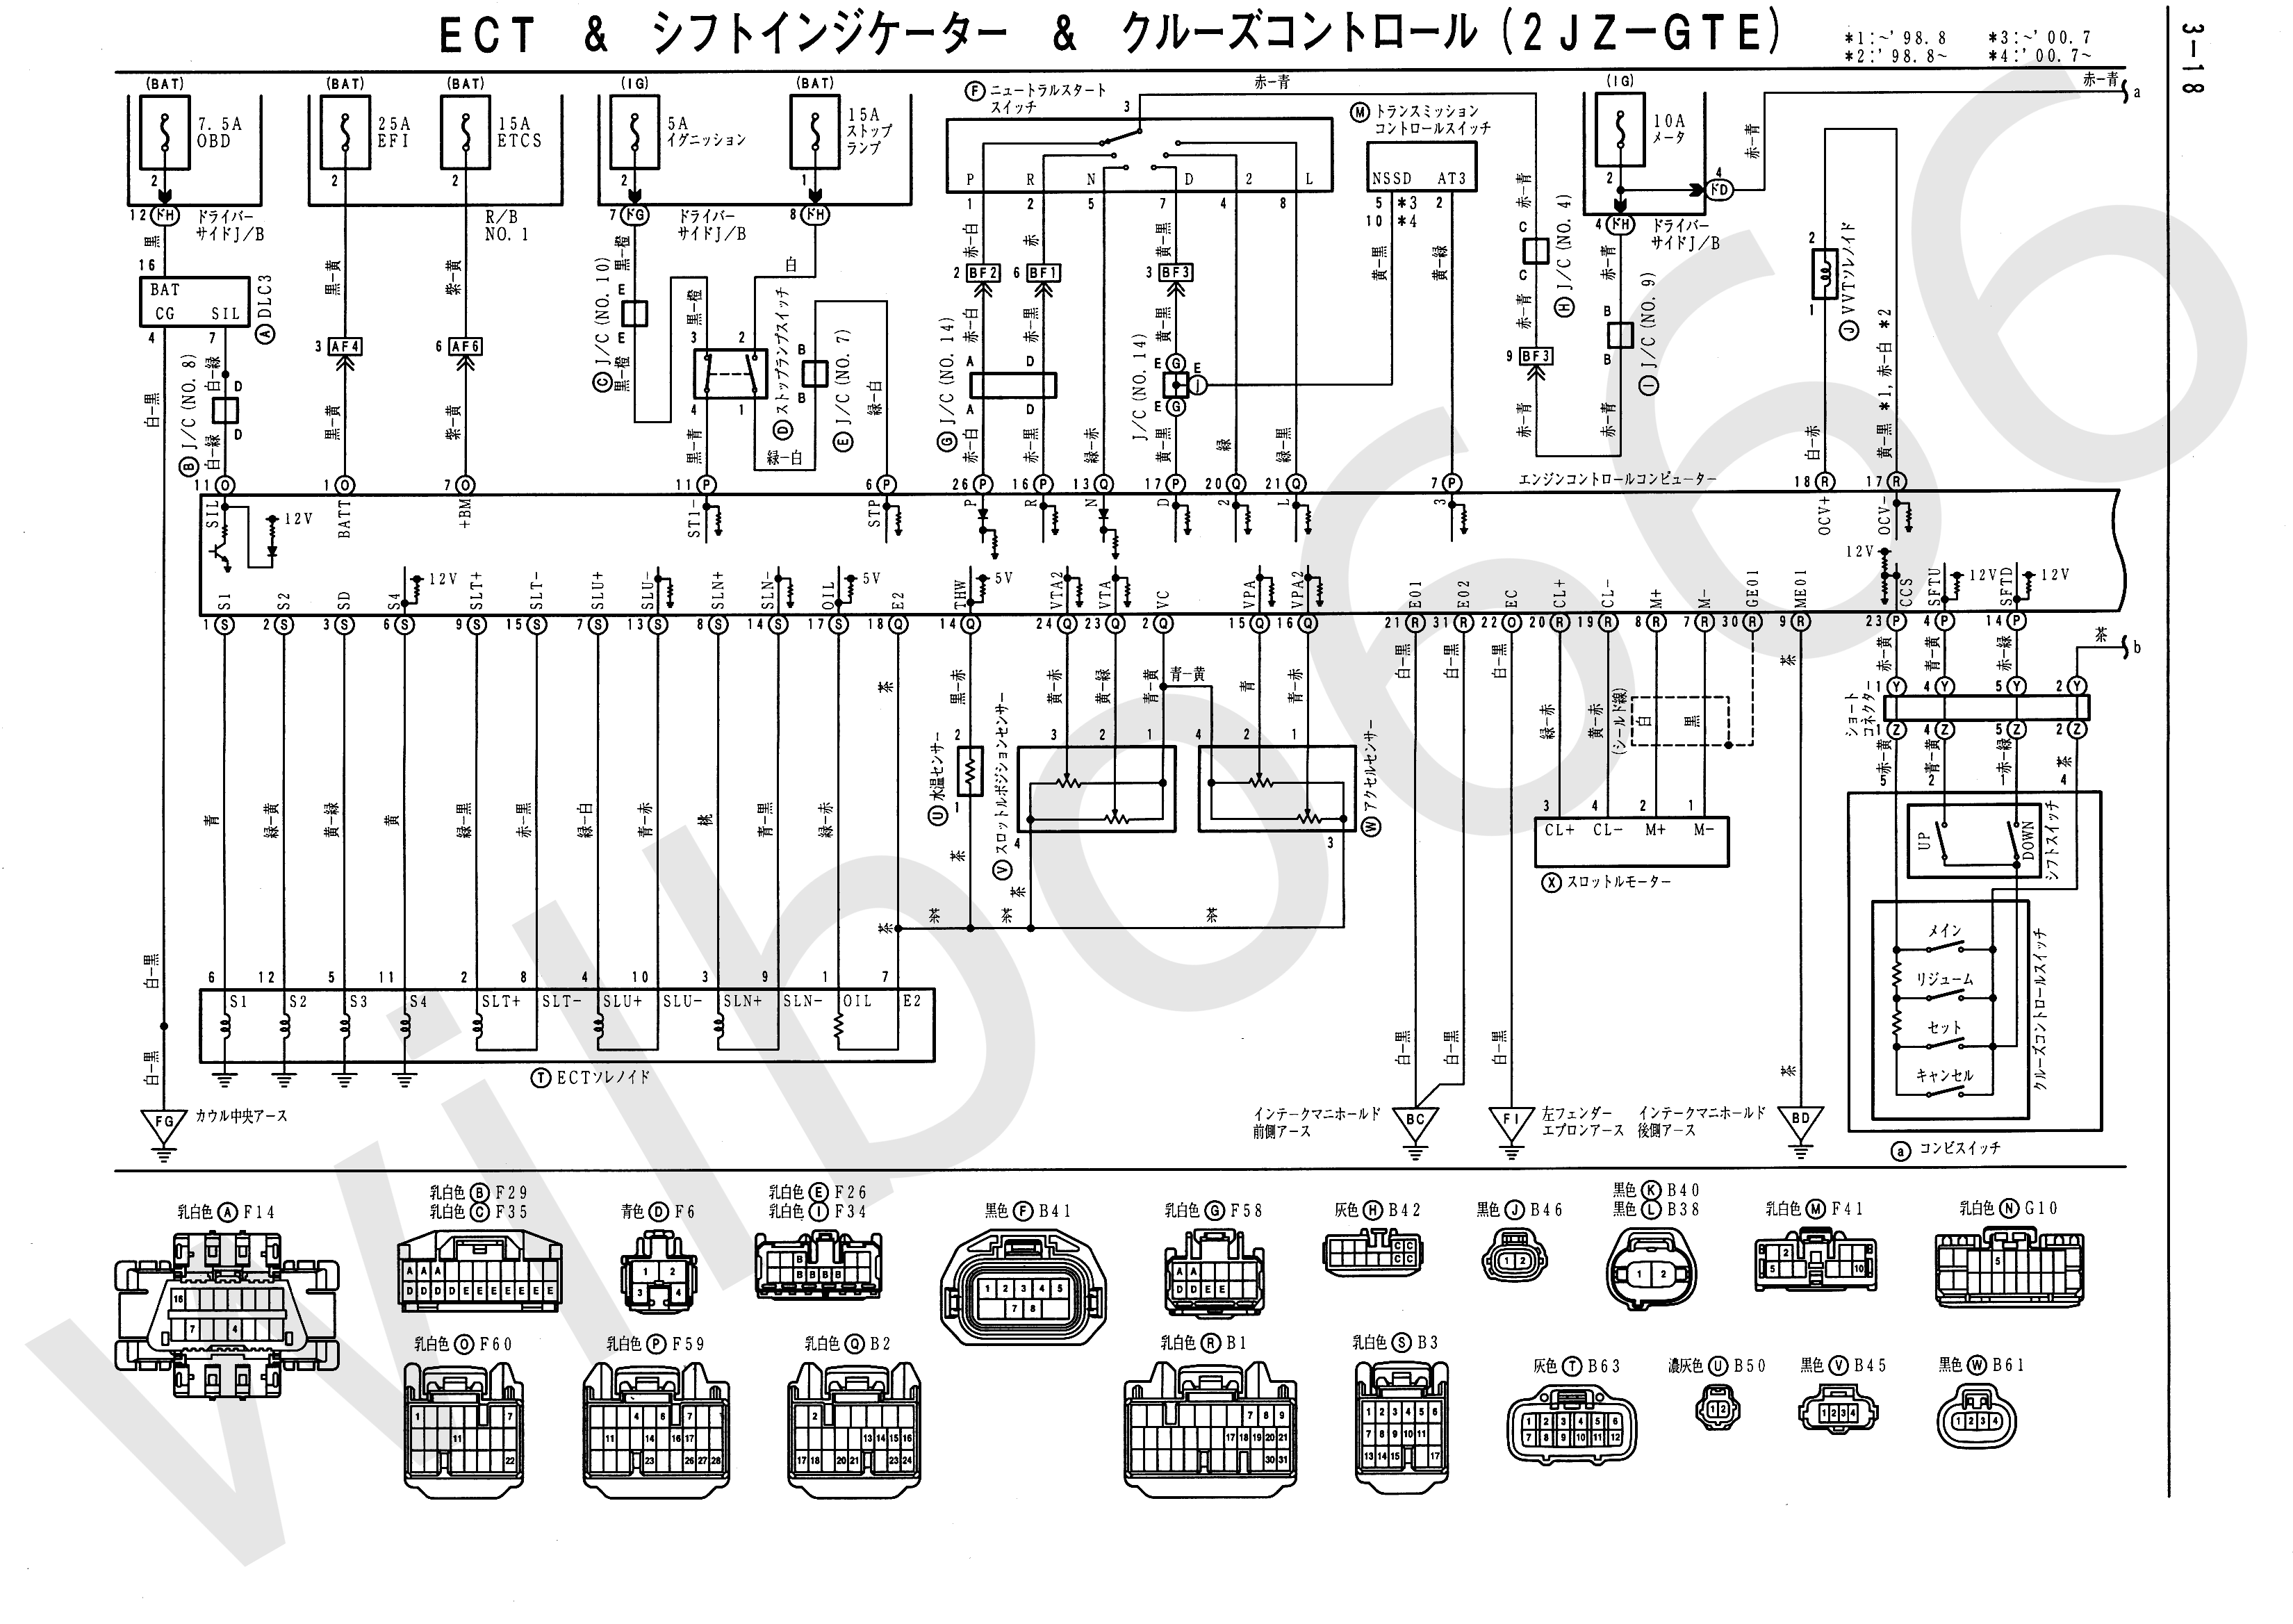 JZS161 Electrical Wiring Diagram 6748505 3 18 1jz wiring diagram light switch wiring diagram \u2022 free wiring 1jz gte wiring diagram pdf at reclaimingppi.co